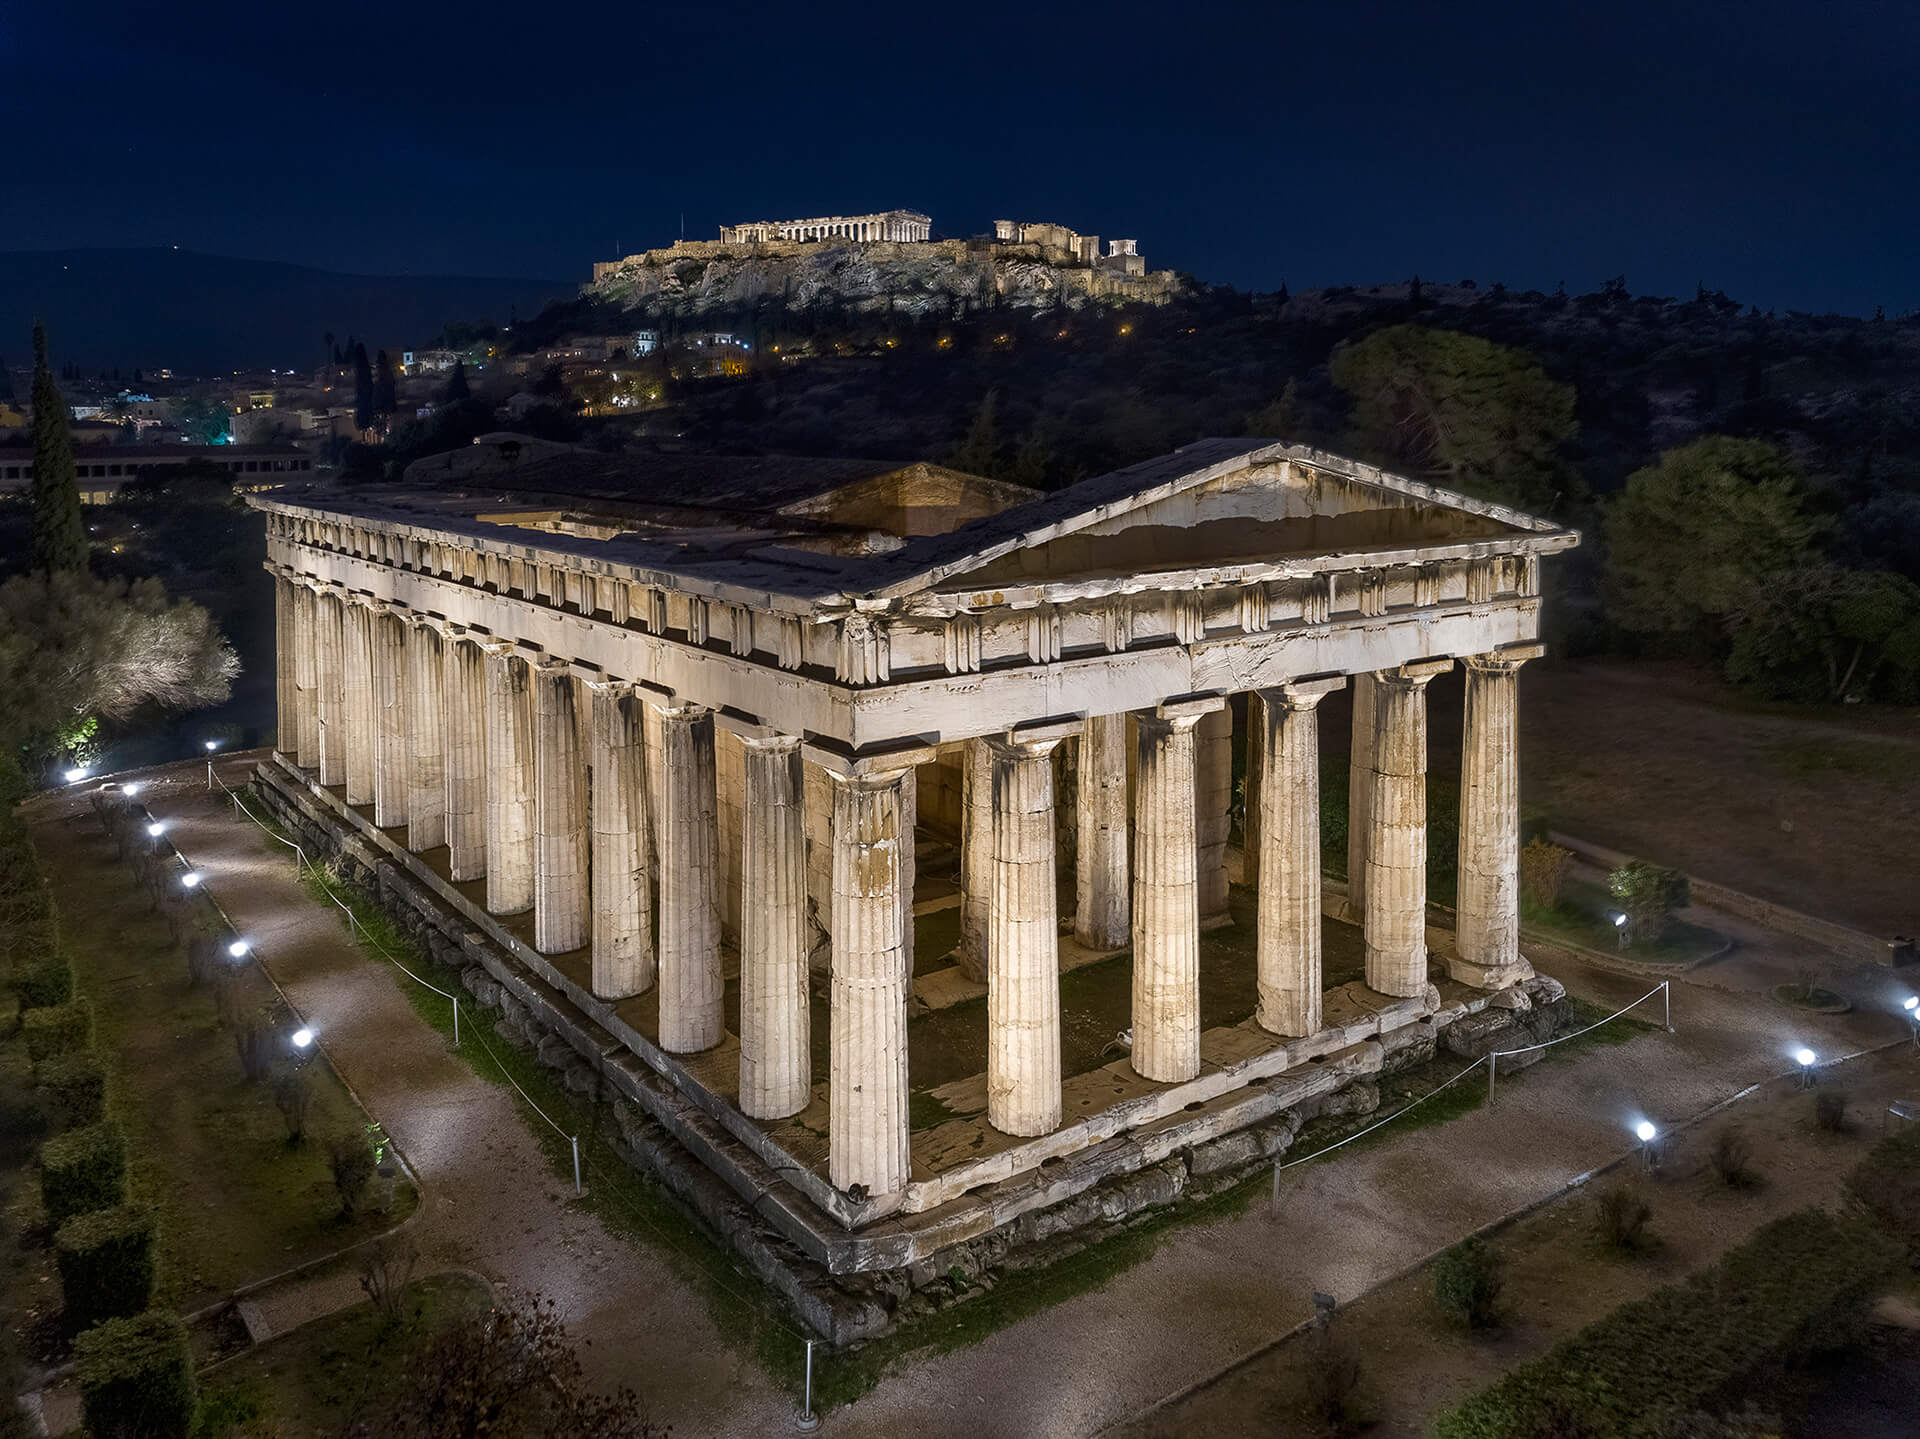 The new lighting system allows for a more versatile display that can be customised to draw attention to specific aspects of the structure's architecture as seen here in the Temple of Hephaestus | Acropolis of Athens by Onassis Foundation designed by Eleftheria Deko | STIRworld